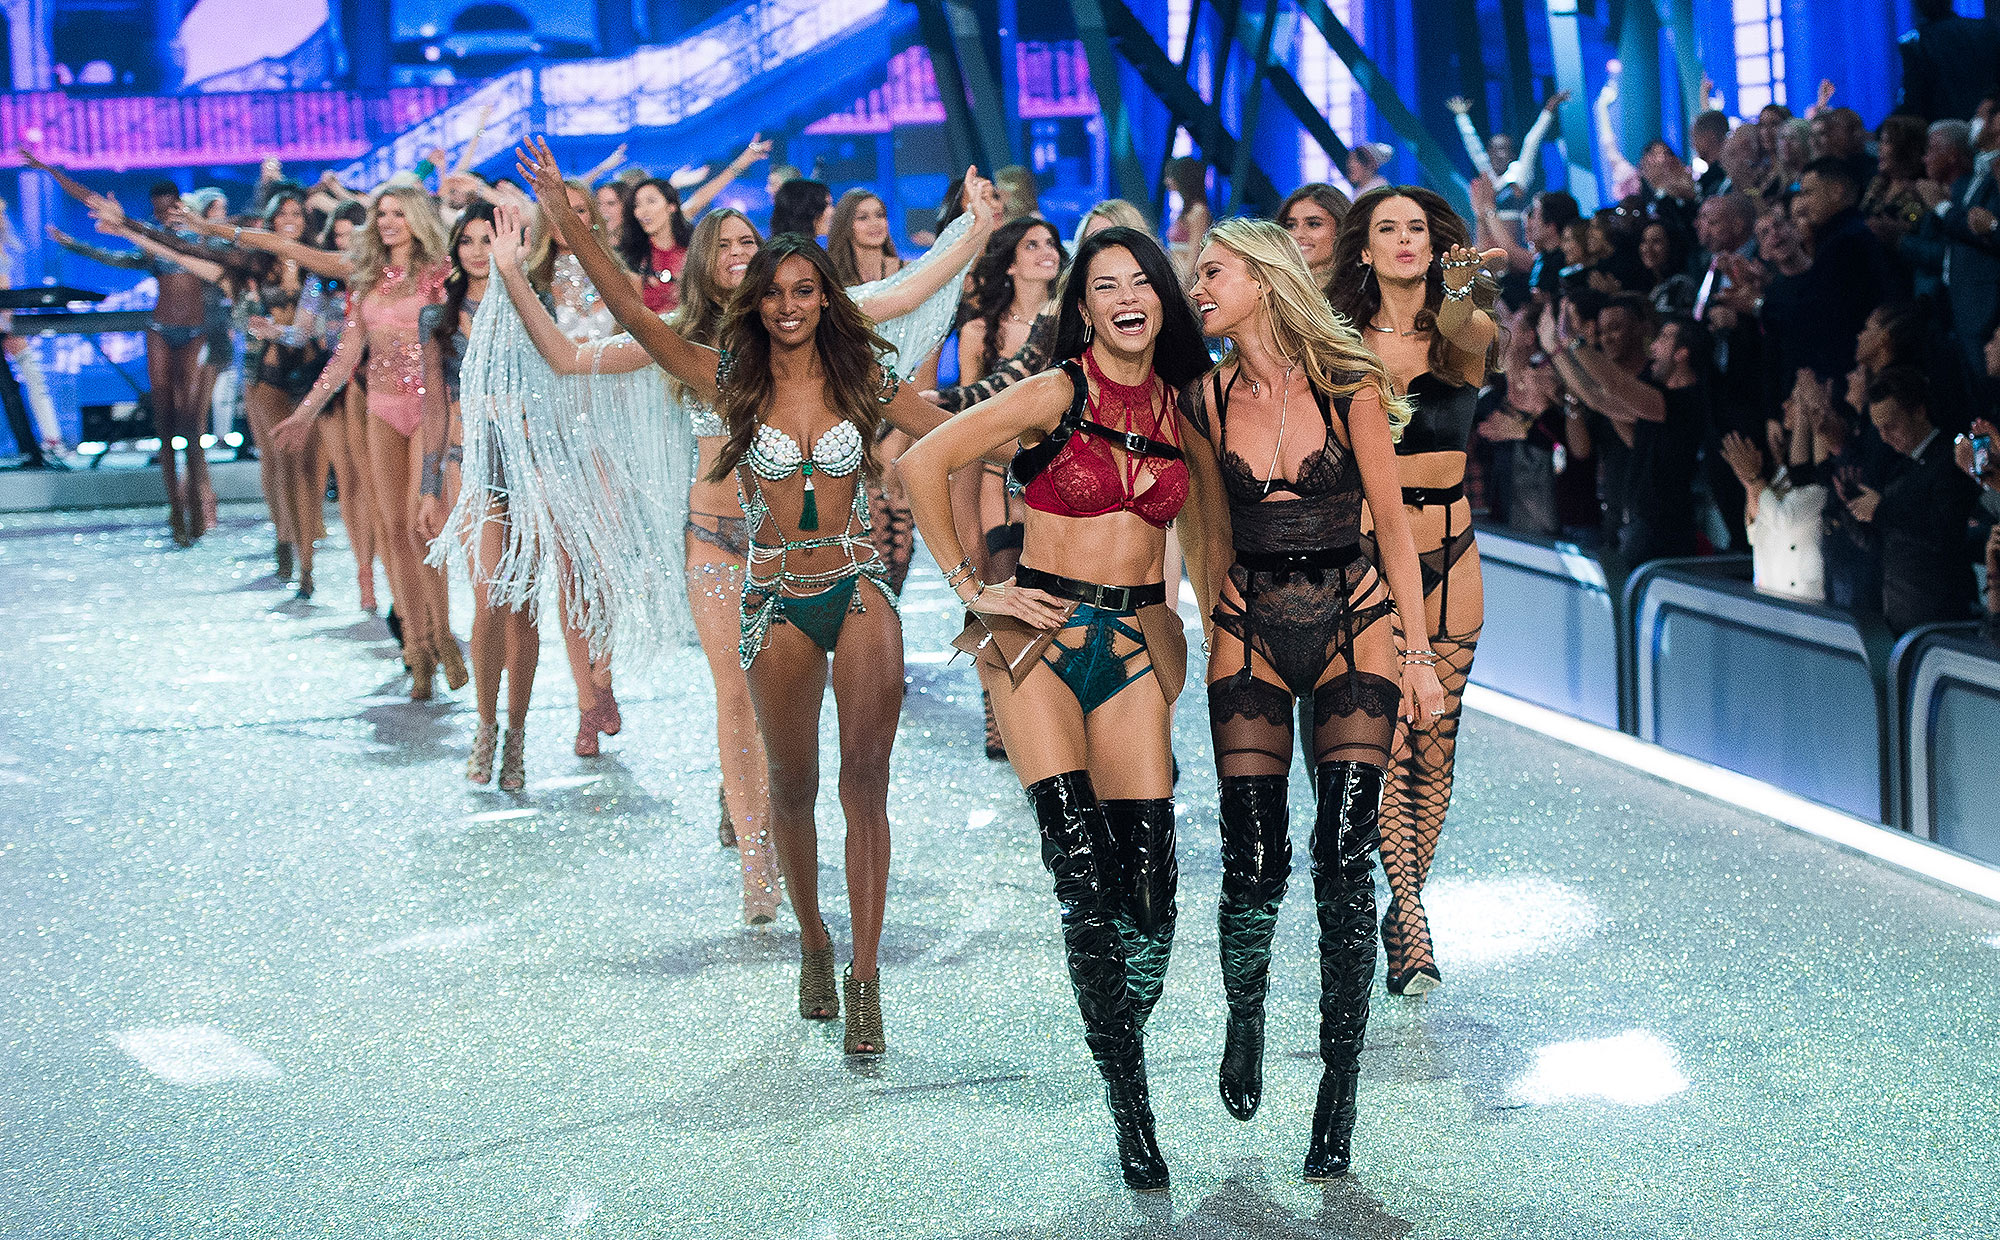 PARIS, FRANCE - NOVEMBER 30: Adriana Lima and Elsa Hosk lead out models as they walk the runway during the annual Victoria's Secret fashion show at Grand Palais on November 30, 2016 in Paris, France. (Photo by Samir Hussein/Samir Hussein/WireImage)